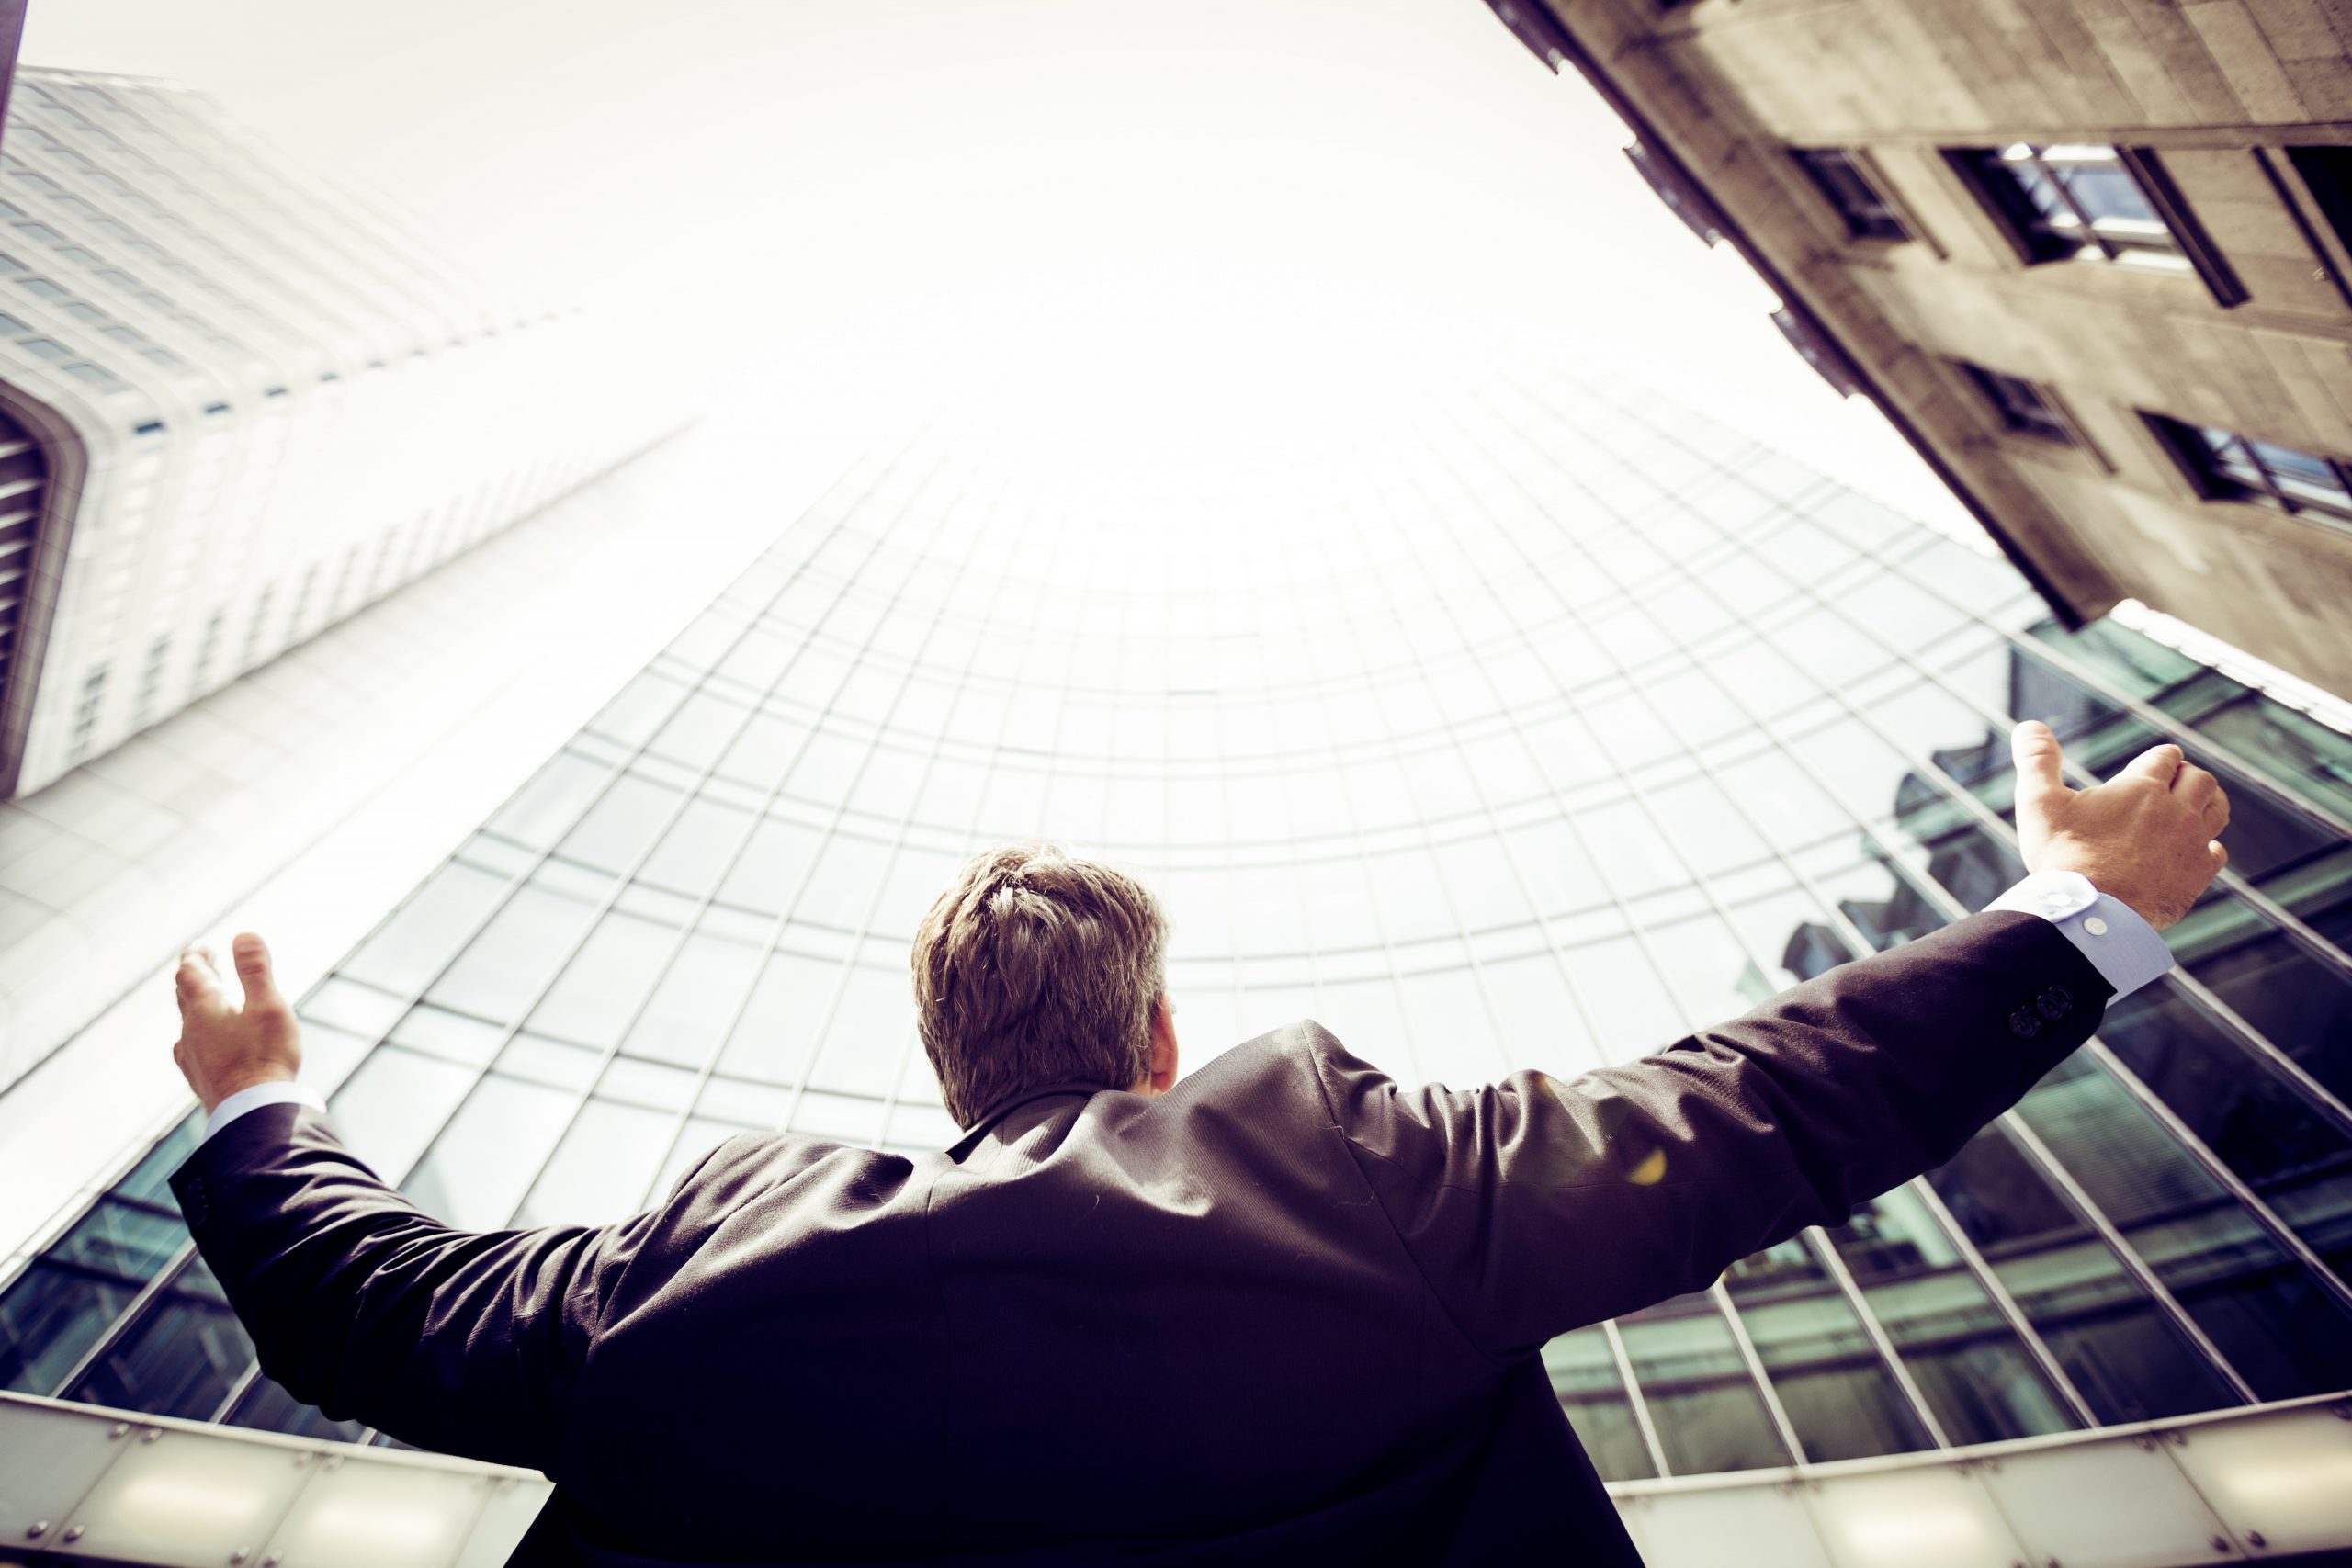 Business man with his arms in the air as he looks up at buildings in a city.